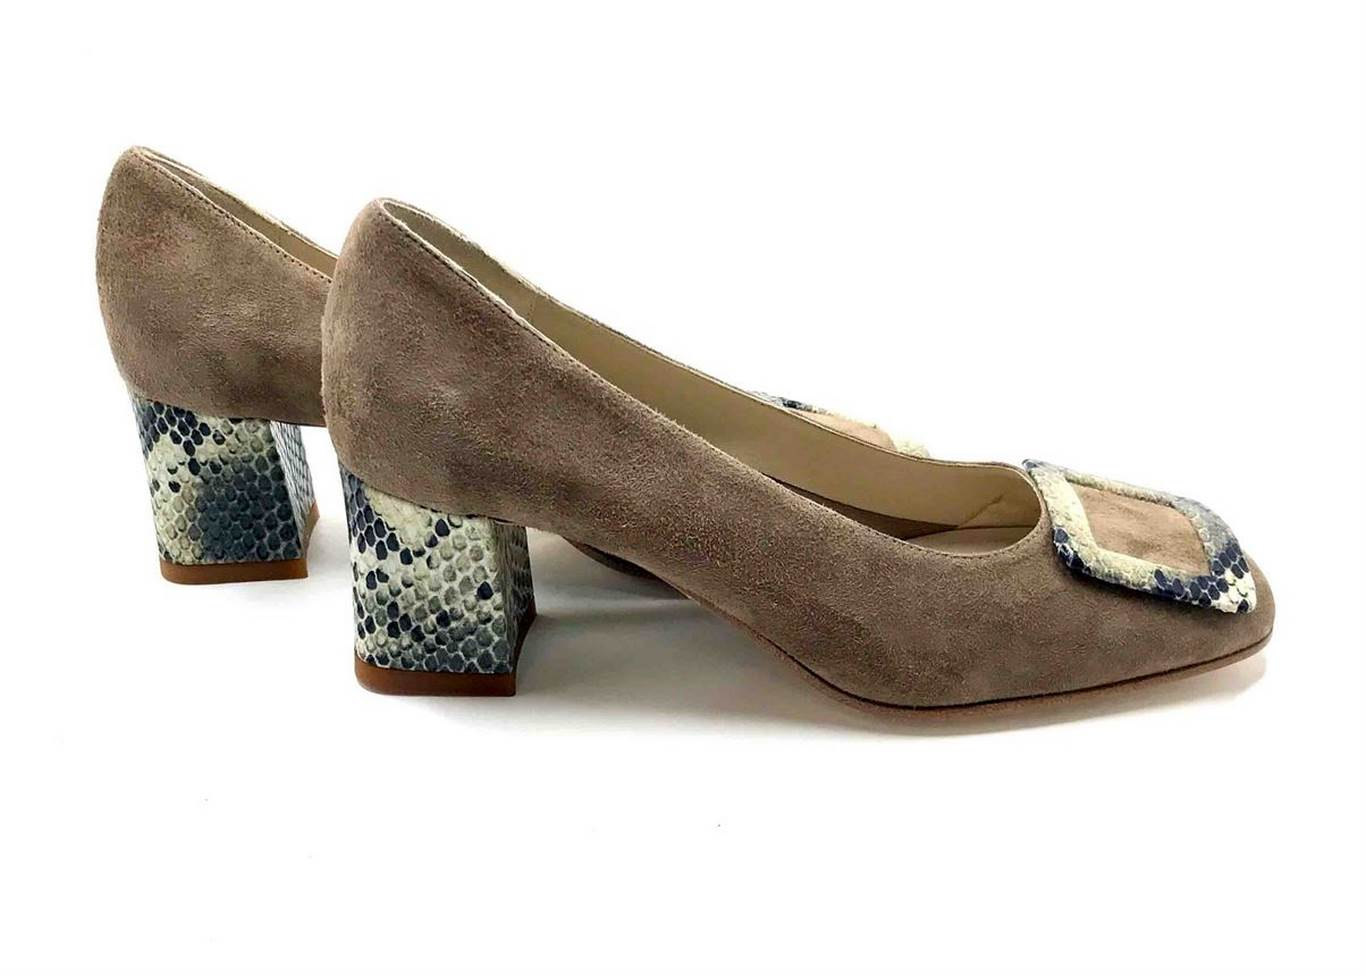 Décolleté Heel 5cm upper in Nature suede, heel and buckle in printed Whit-ish phyton